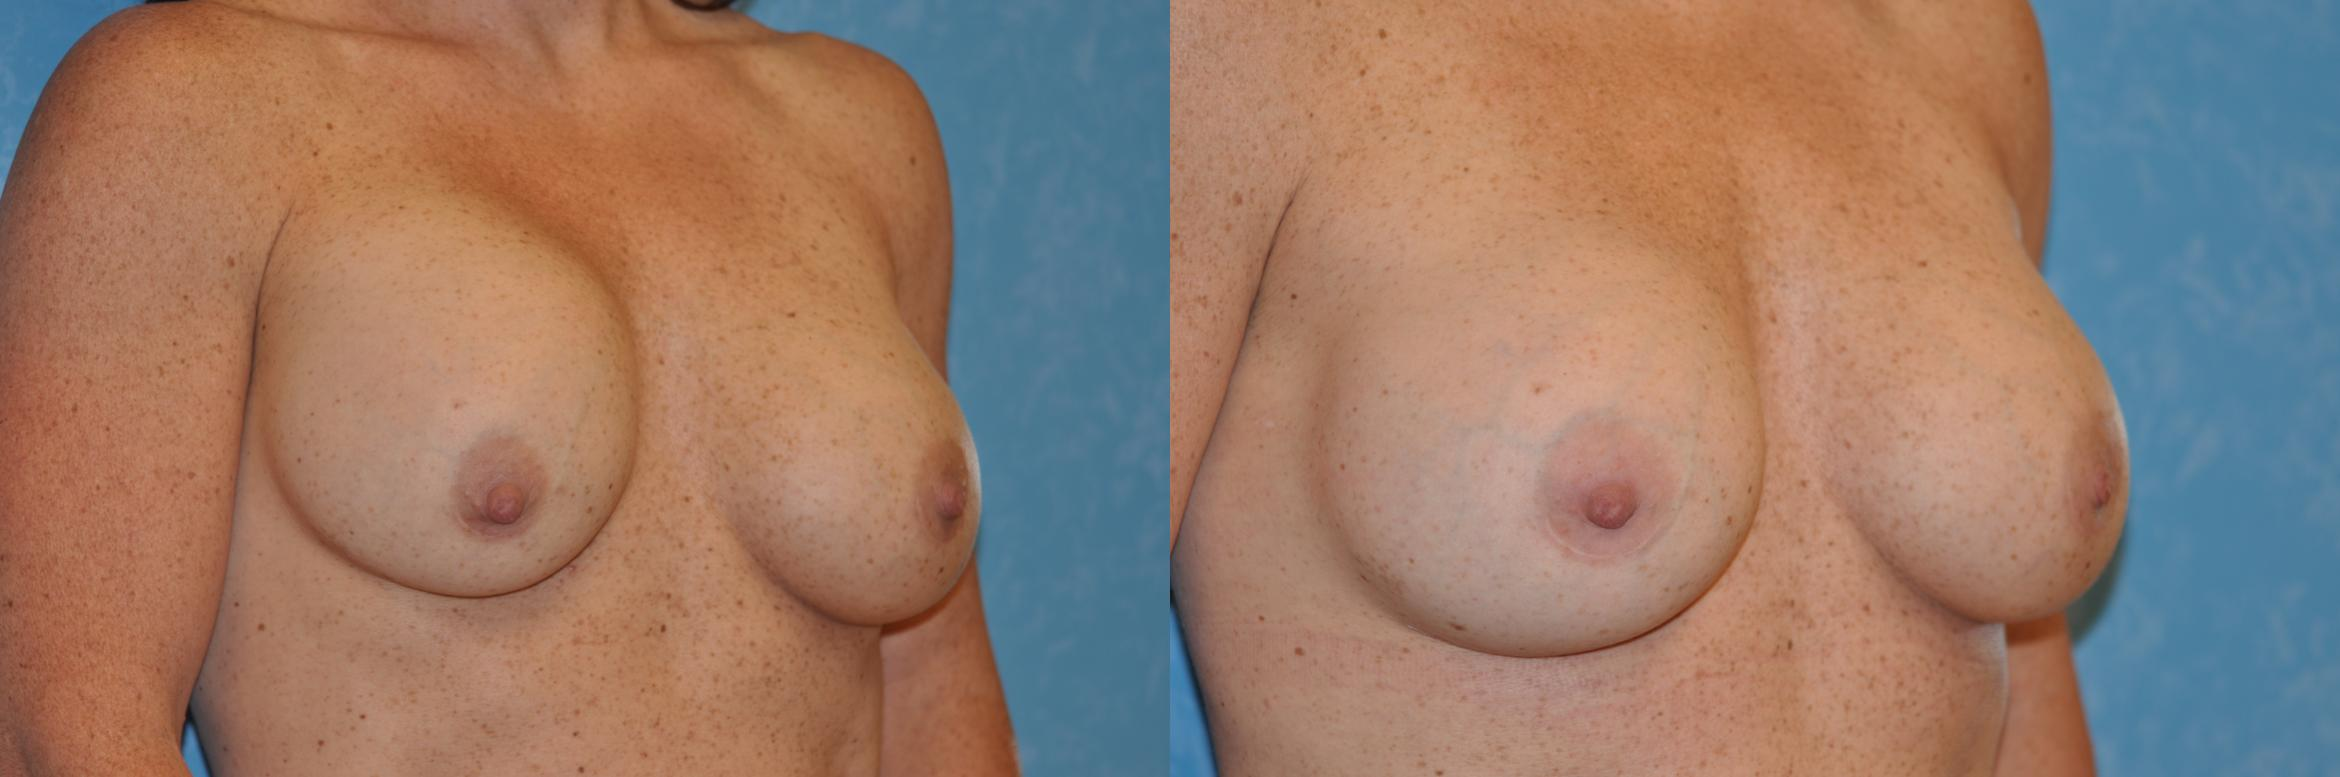 Implant Revision Before & After Photo | Toledo, Ohio | Dr. Craig Colville